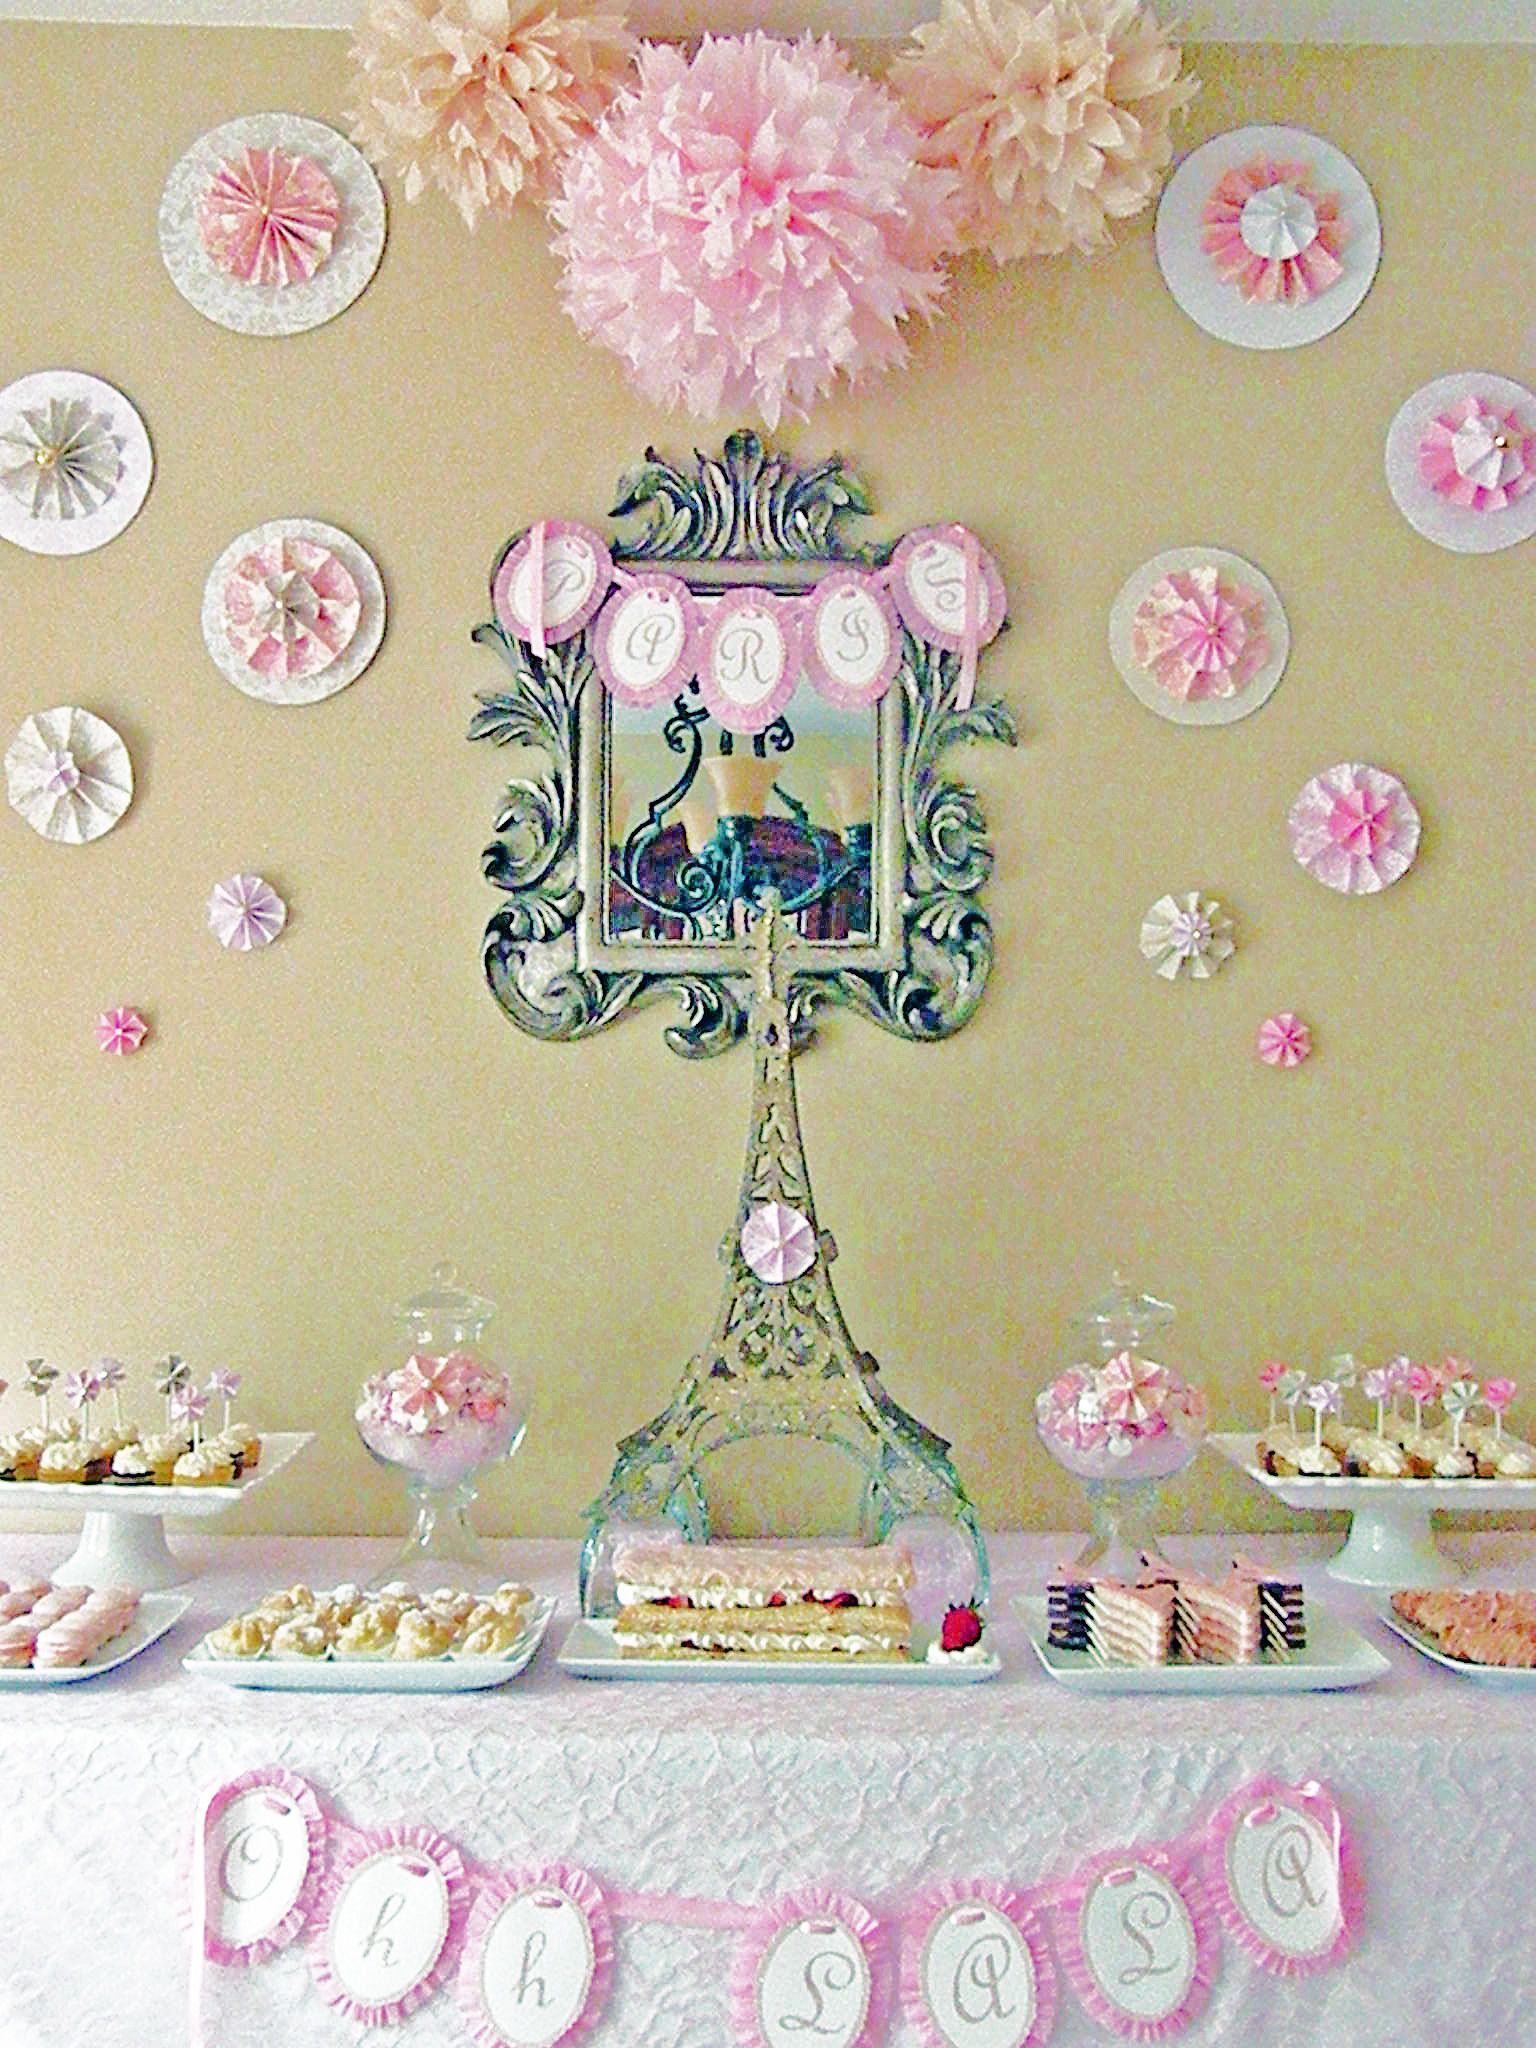 HandCrafted Party Paris in Spring Birthday party themes Food